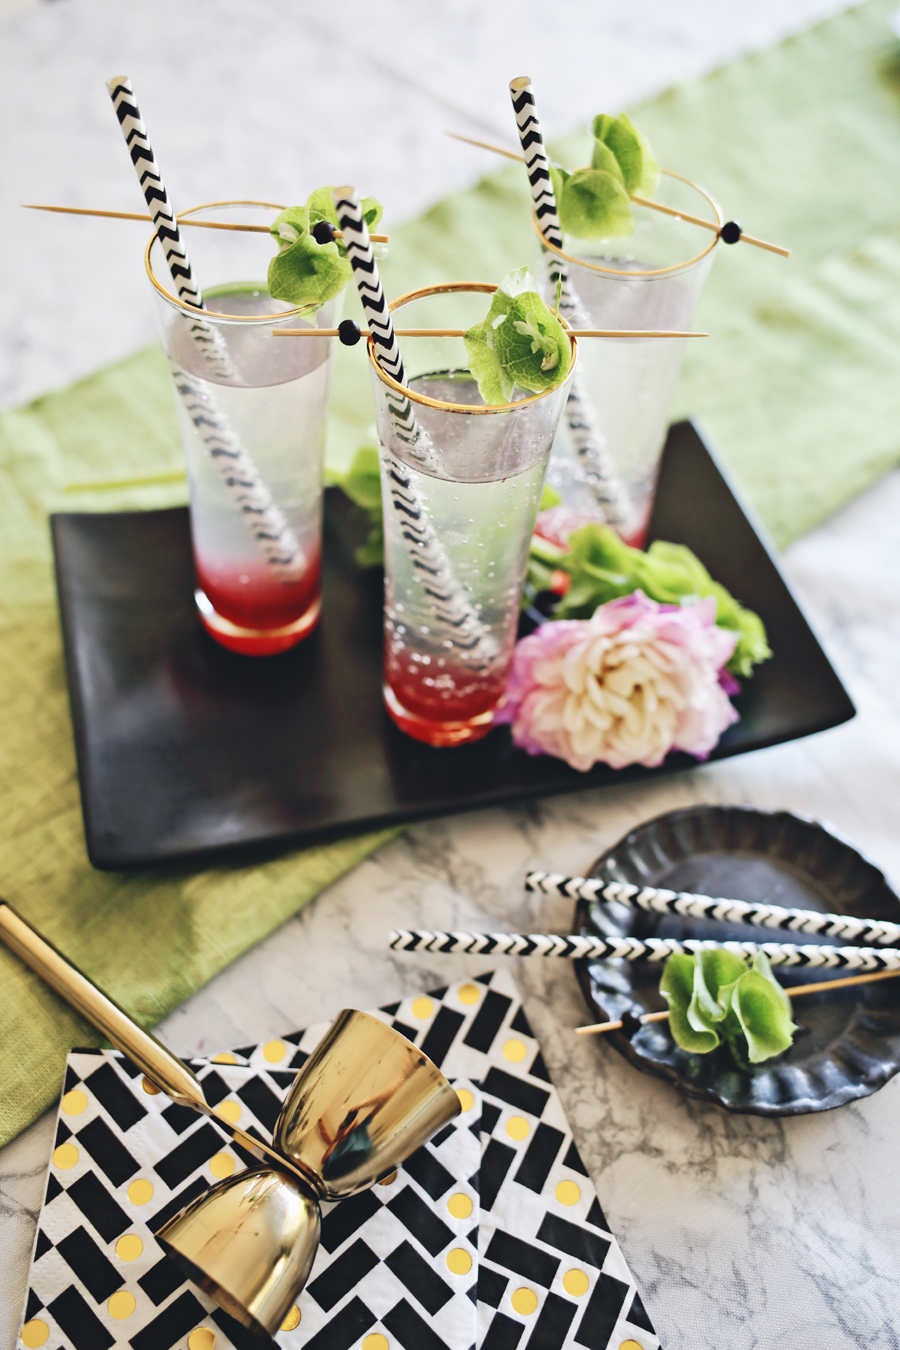 03_Graphic Table For Summer | Dine X Design